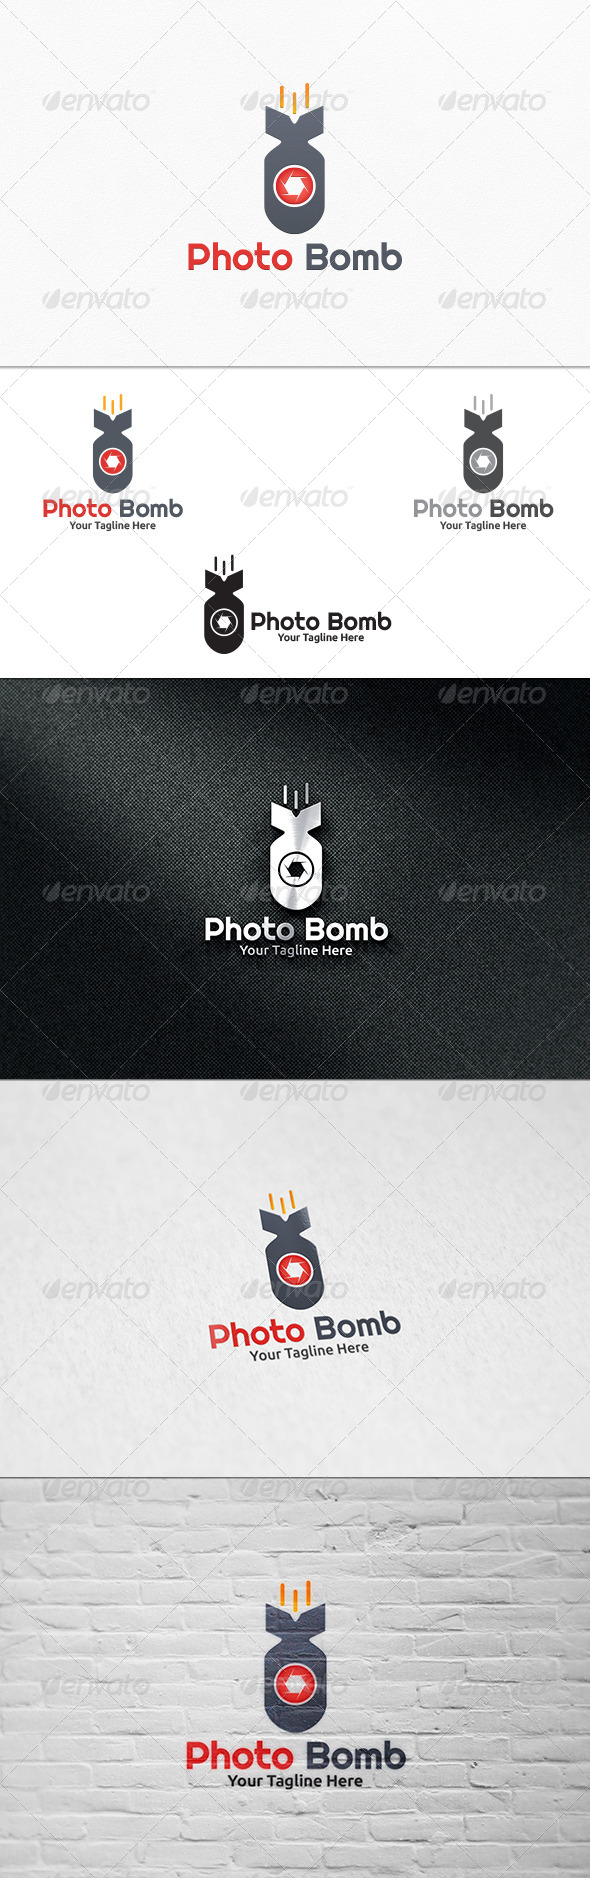 GraphicRiver Photo Bomb Logo Template 7360449